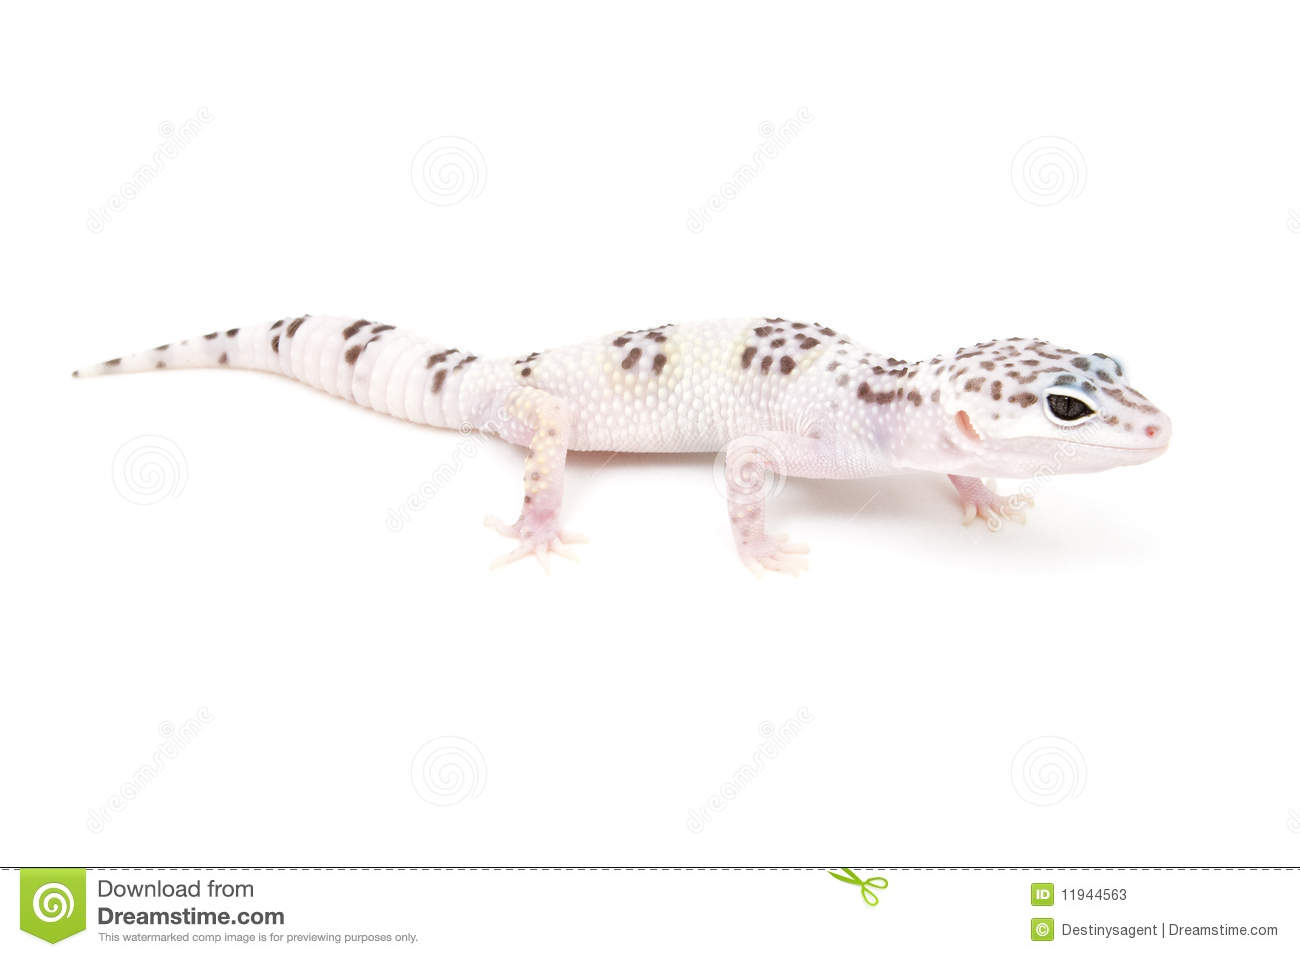 Tug Hypo Leopard Gecko Stock Images - Download 2 Royalty